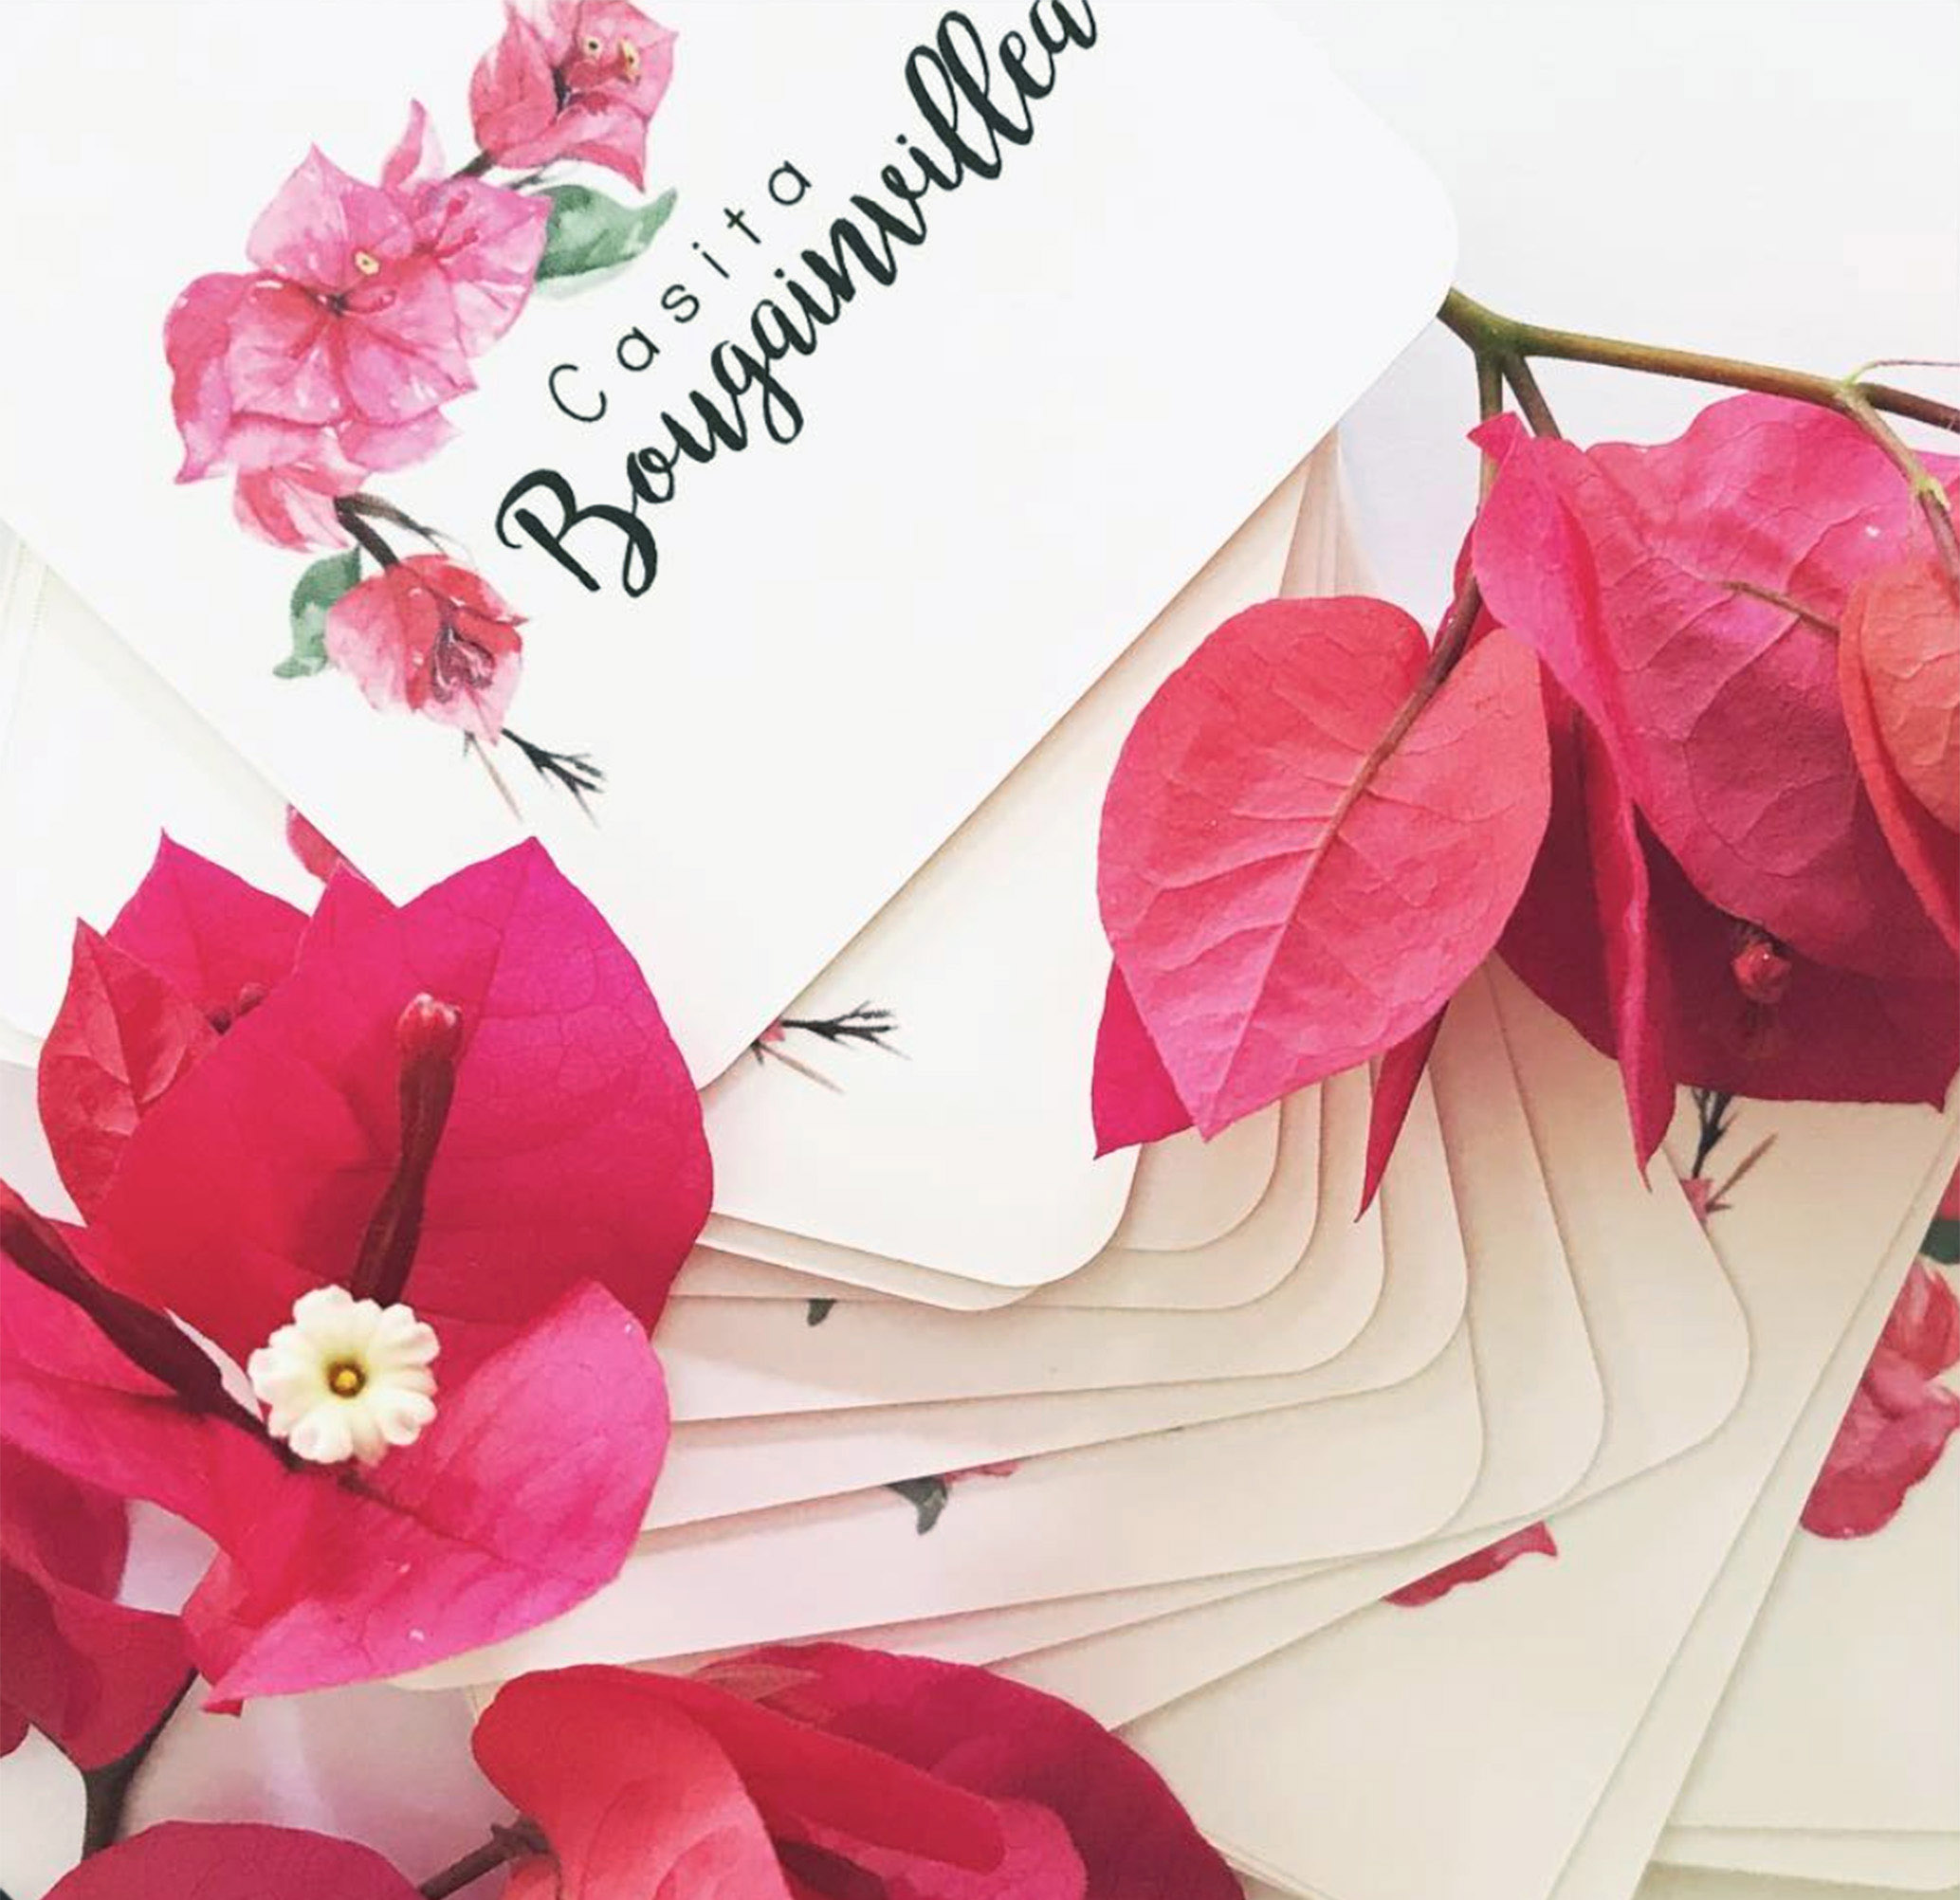 Casita Bougainvillea logo design